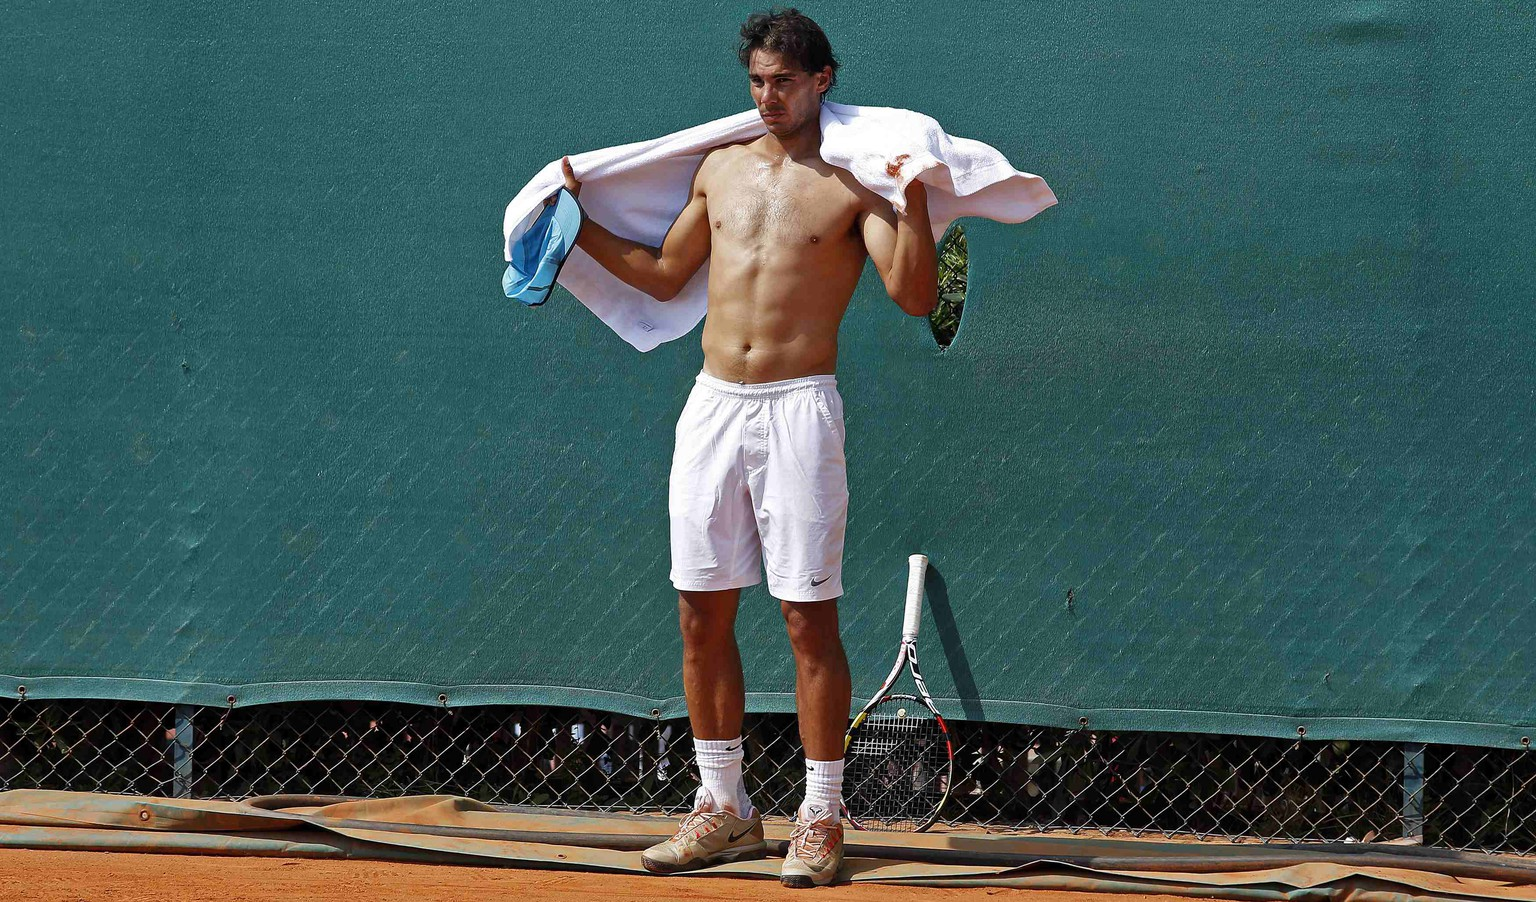 Rafael Nadal of Spain uses a towel to dry off during a training session at the Monte Carlo Masters in Monaco April 14, 2014. REUTERS/Eric Gaillard (MONACO - Tags: SPORT TENNIS)